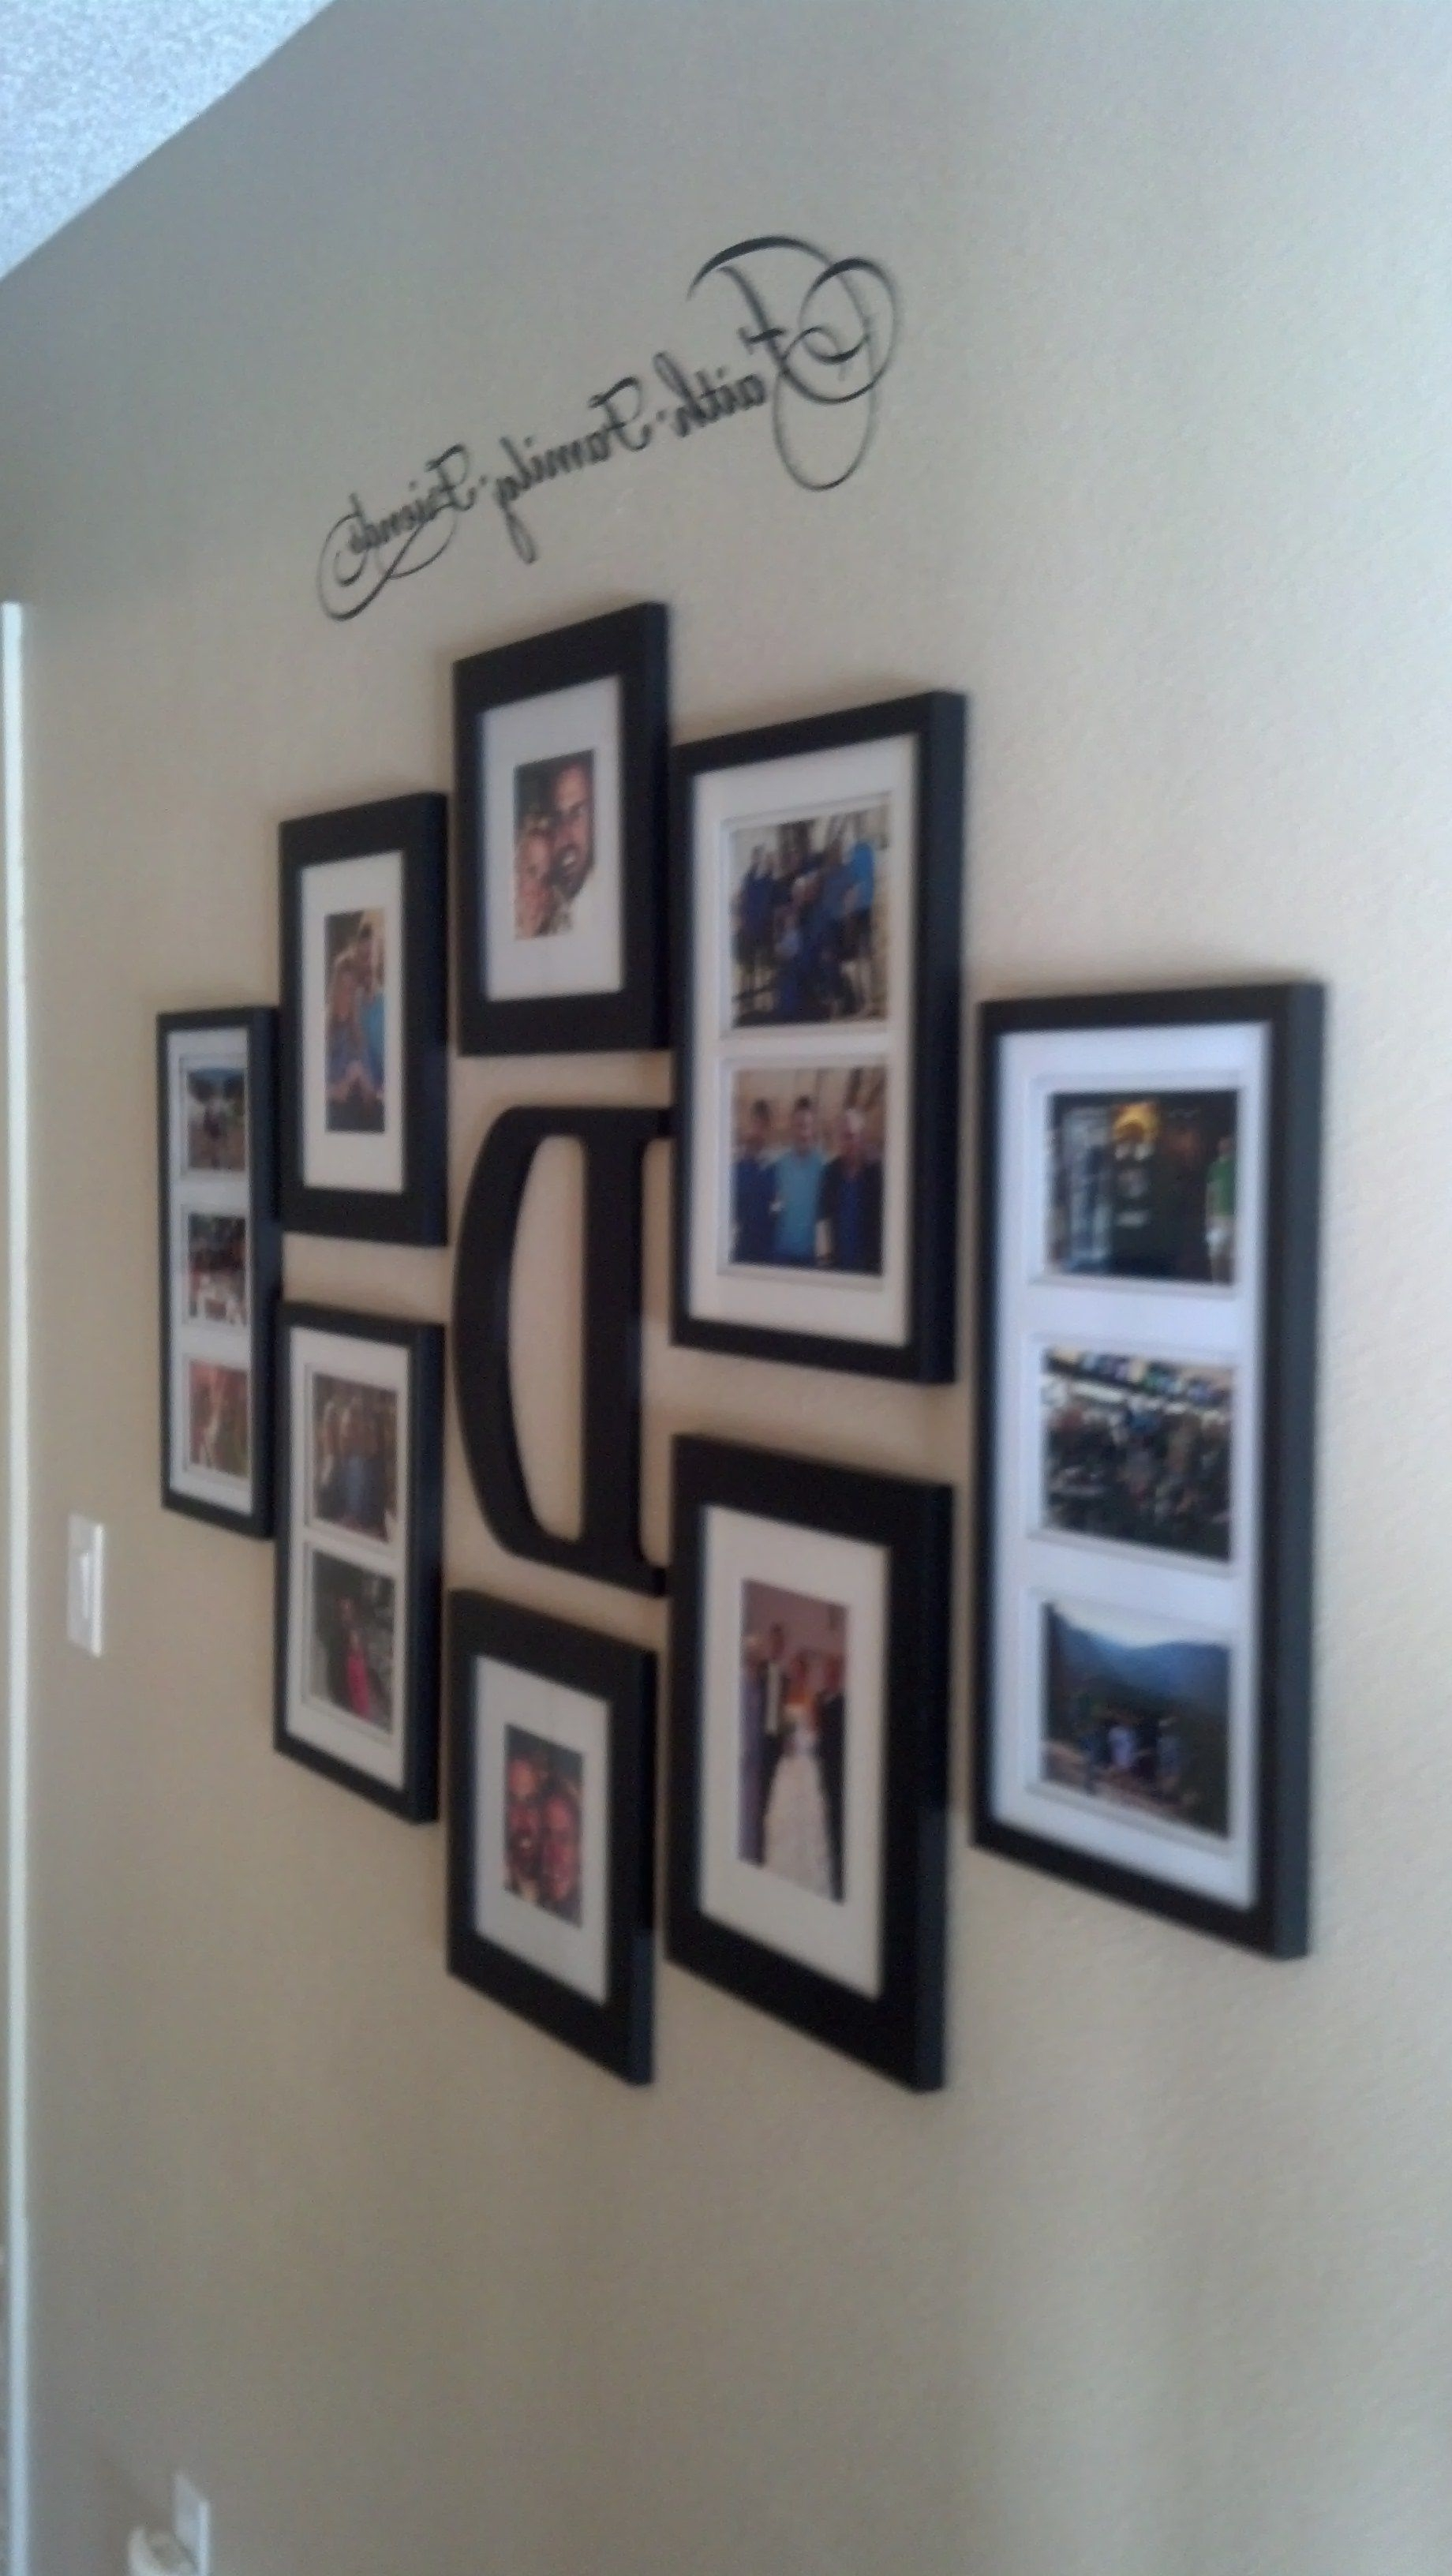 On The Walls For Most Recent Family Wall Art Picture Frames (Gallery 14 of 15)